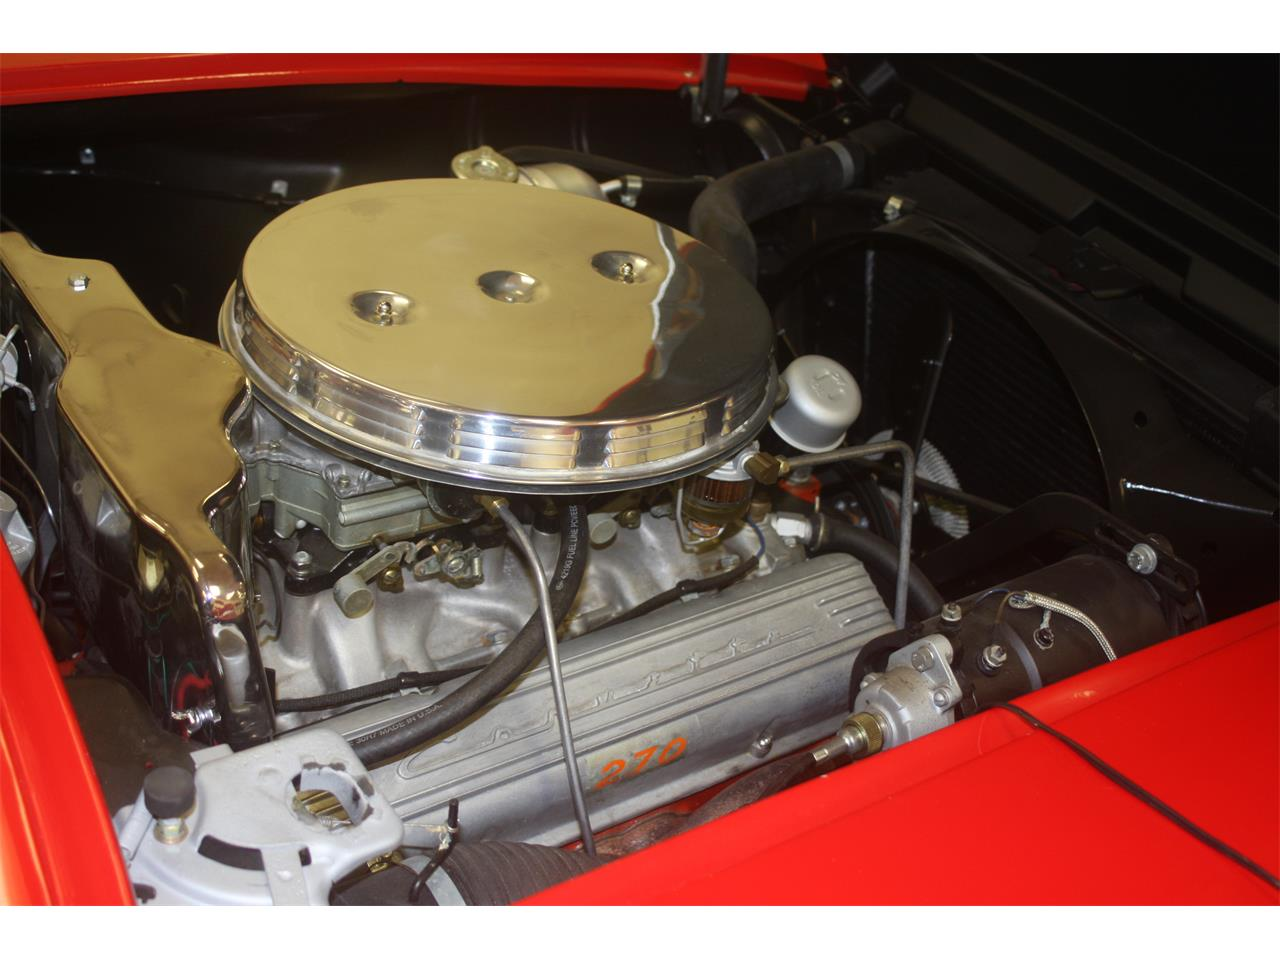 Large Picture of '61 Chevrolet Corvette located in Utah - $69,900.00 Offered by a Private Seller - DOWP